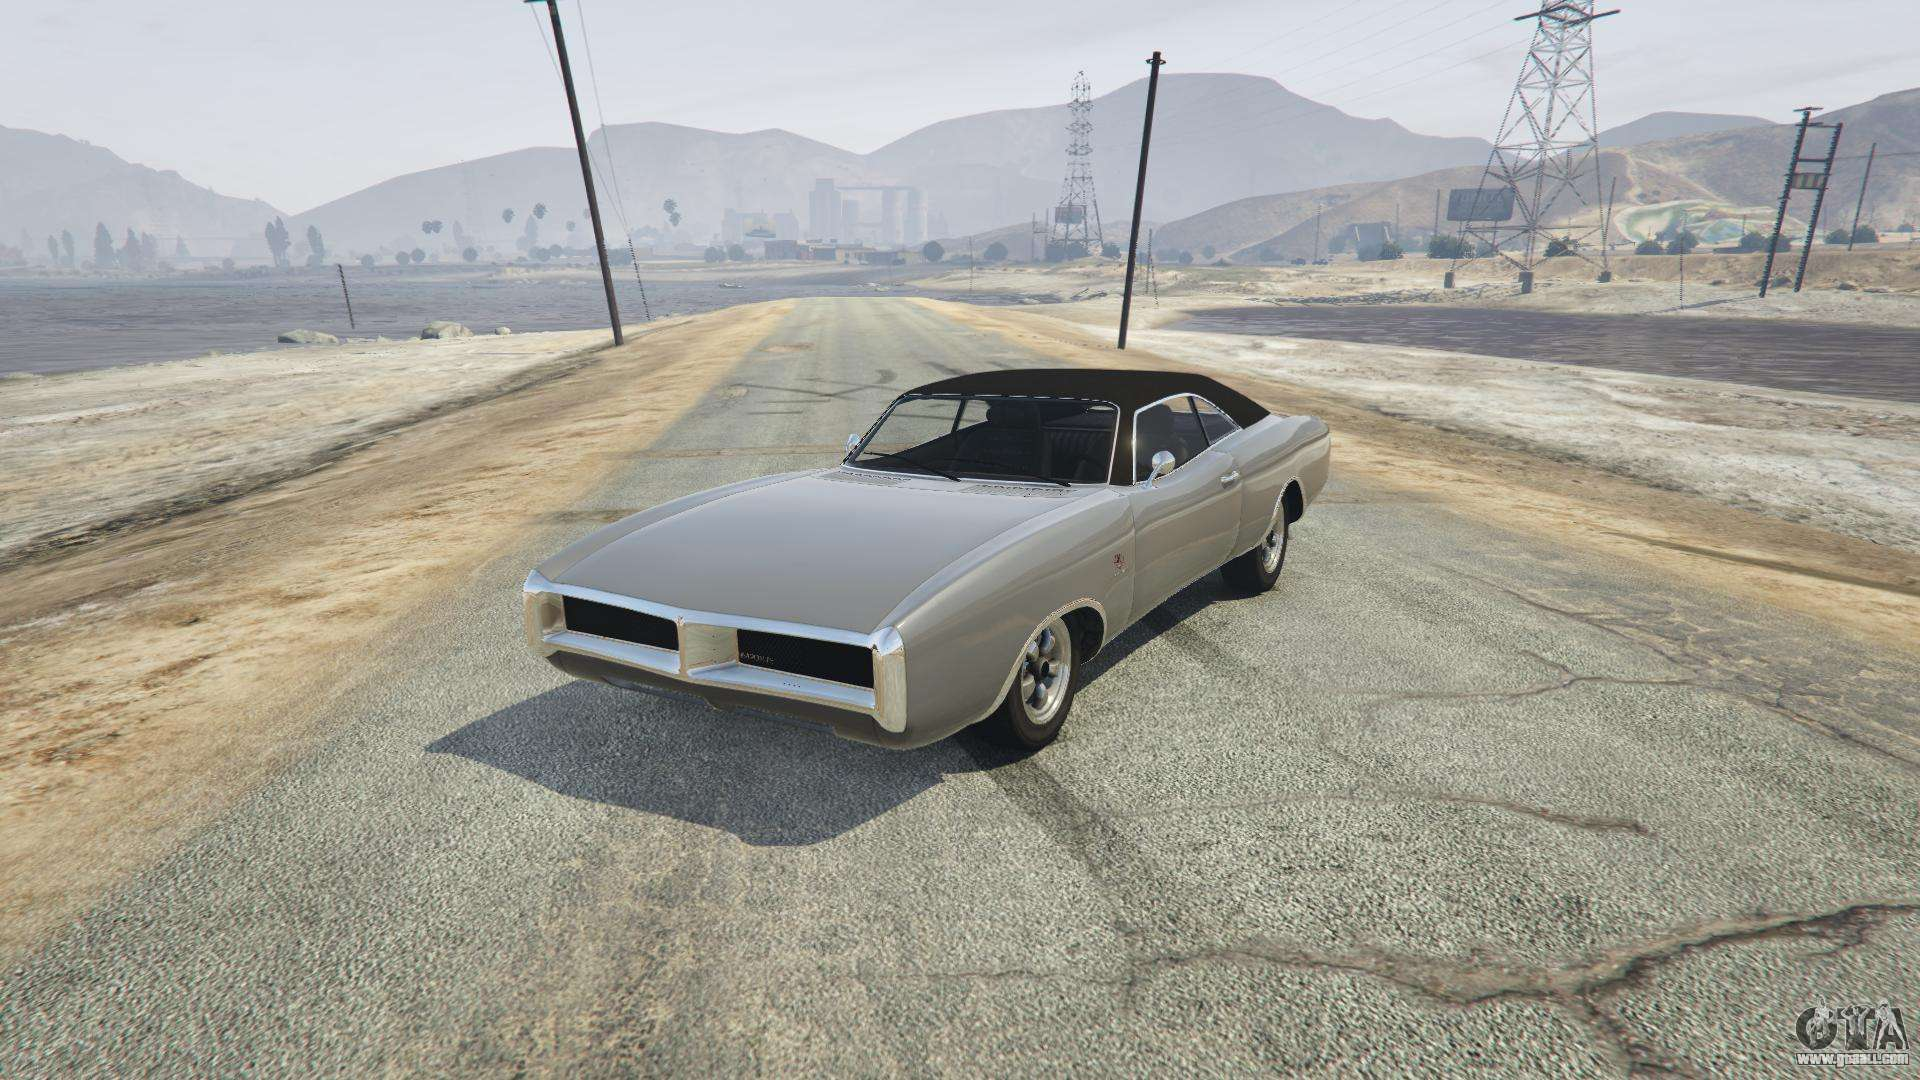 Gta Vehicles All Cars And Motorcycles Planes And Helicopters